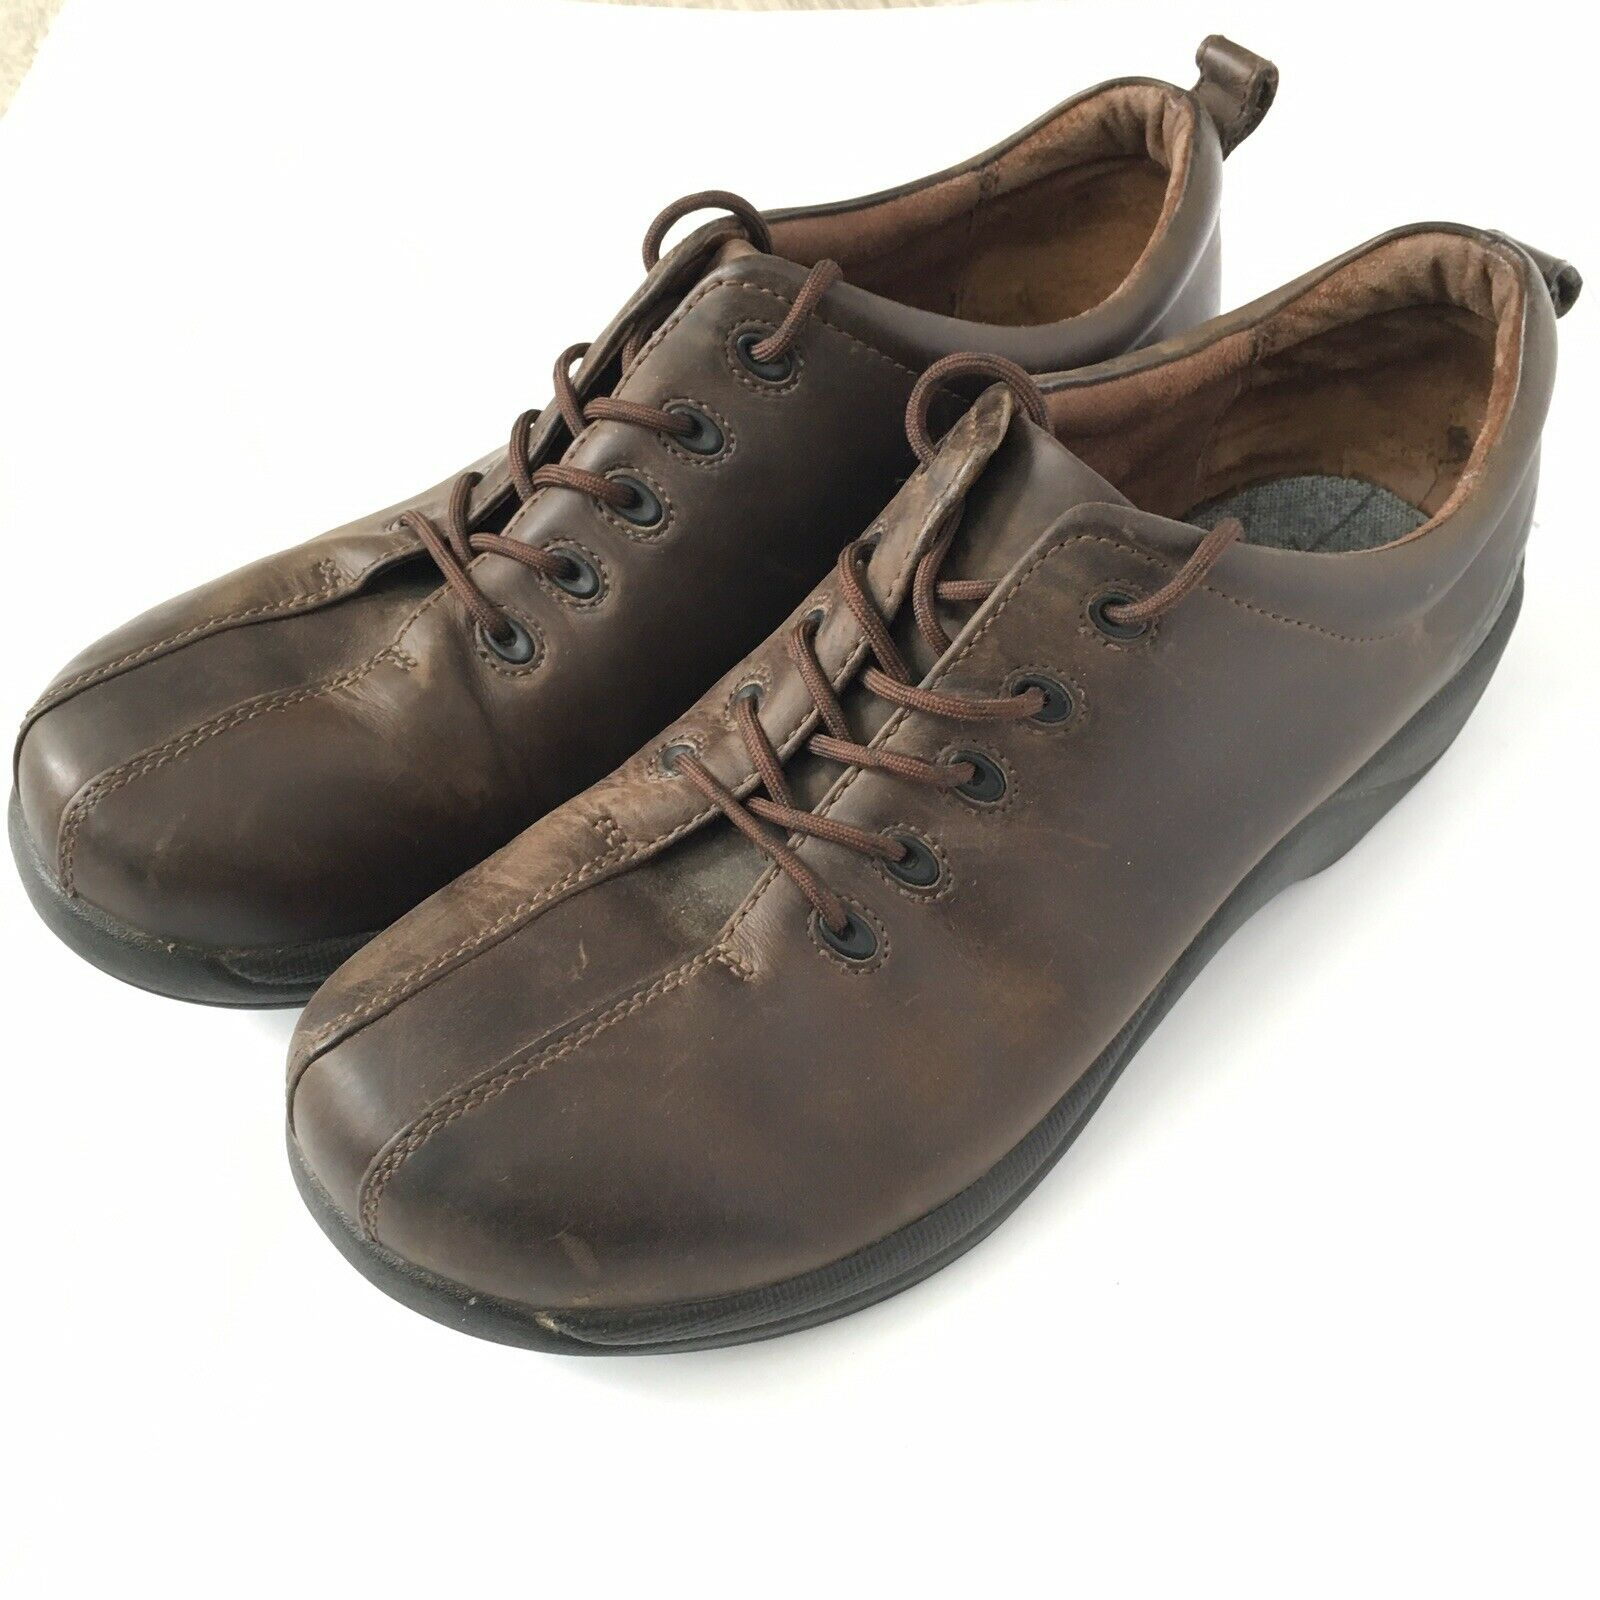 Dansko Size 47 Men's 13-14 Brown Carson Oiled Leather Lace up Oxford shoes